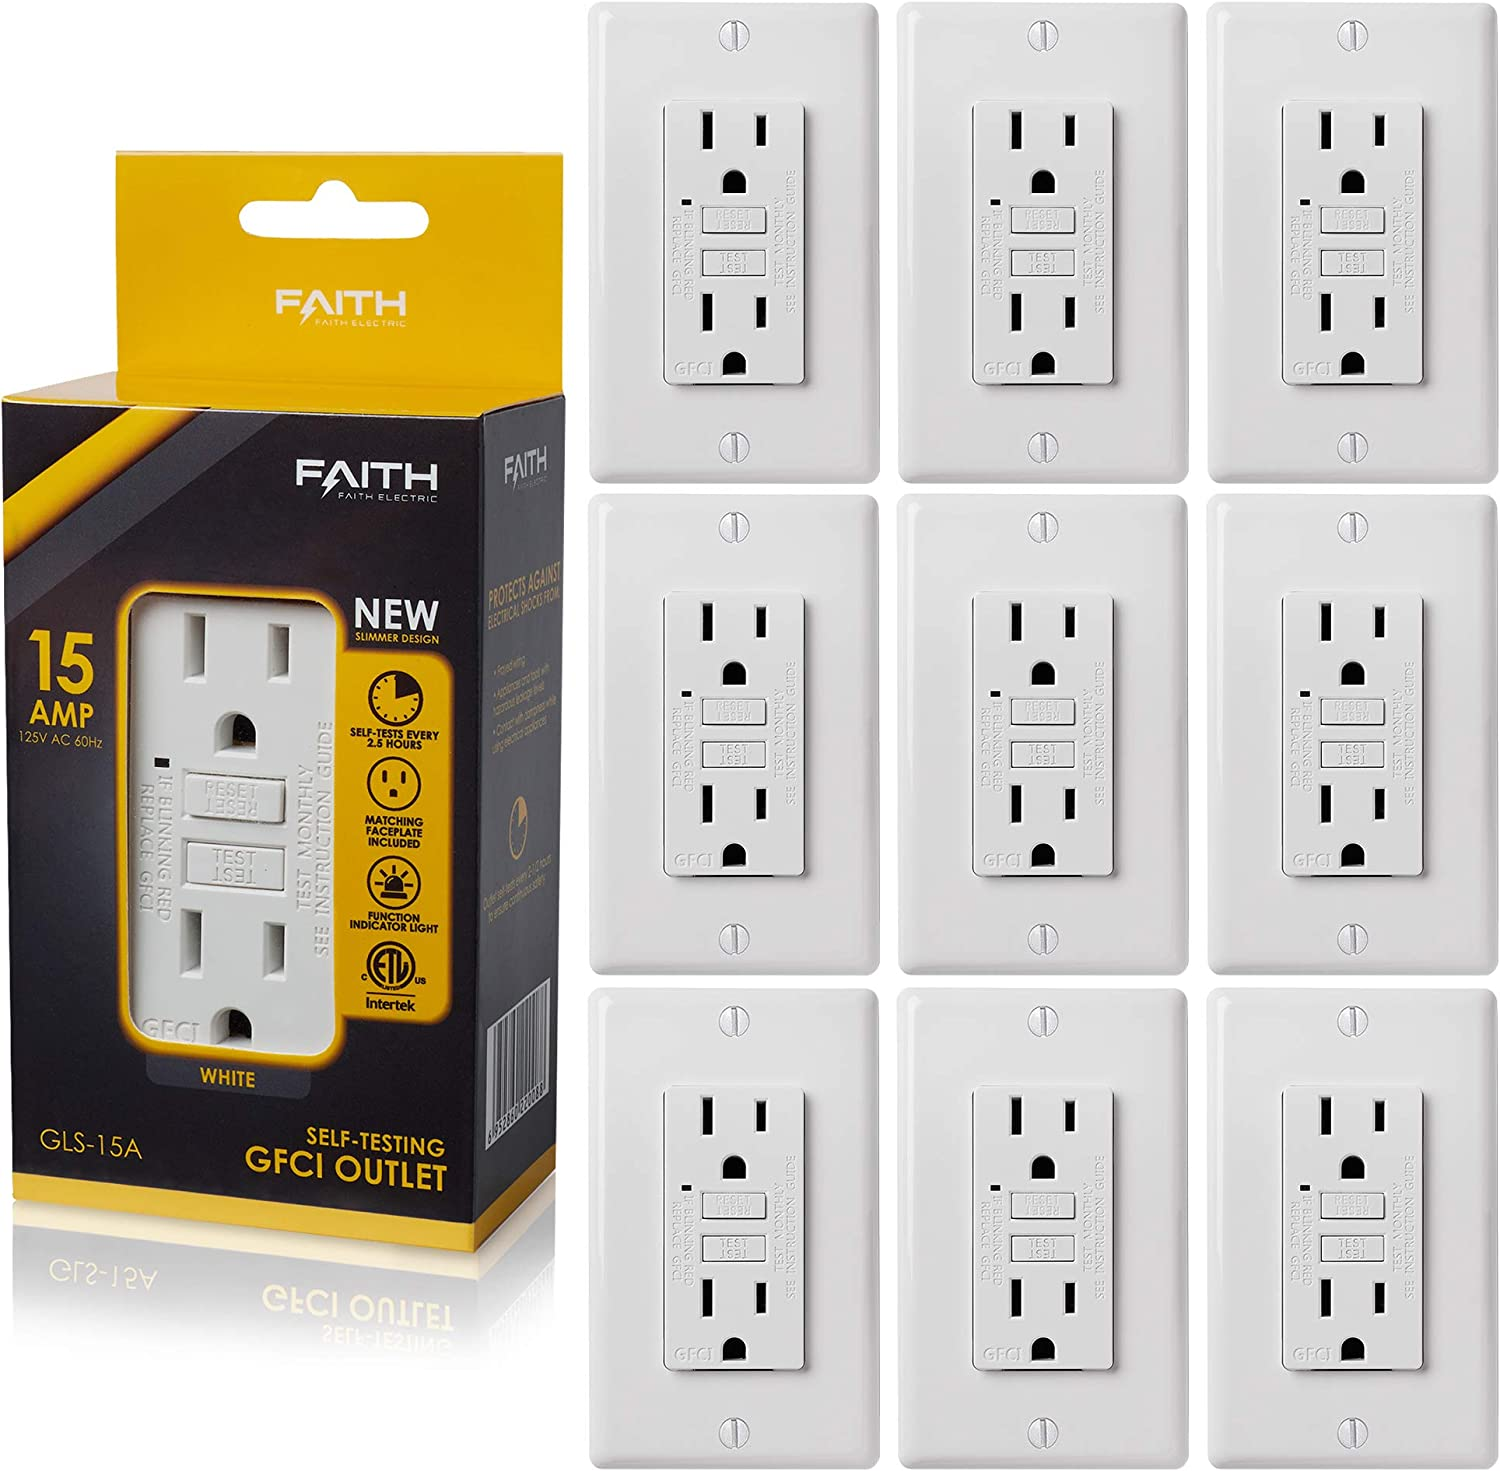 Faith [10-Pack] 15A GFCI Outlets Slim, Non-Tamper-Resistant GFI Duplex Receptacles with LED Indicator, Self-Test Ground Fault Circuit Interrupter with Wall Plate, ETL Listed, White, 10 Piece - -